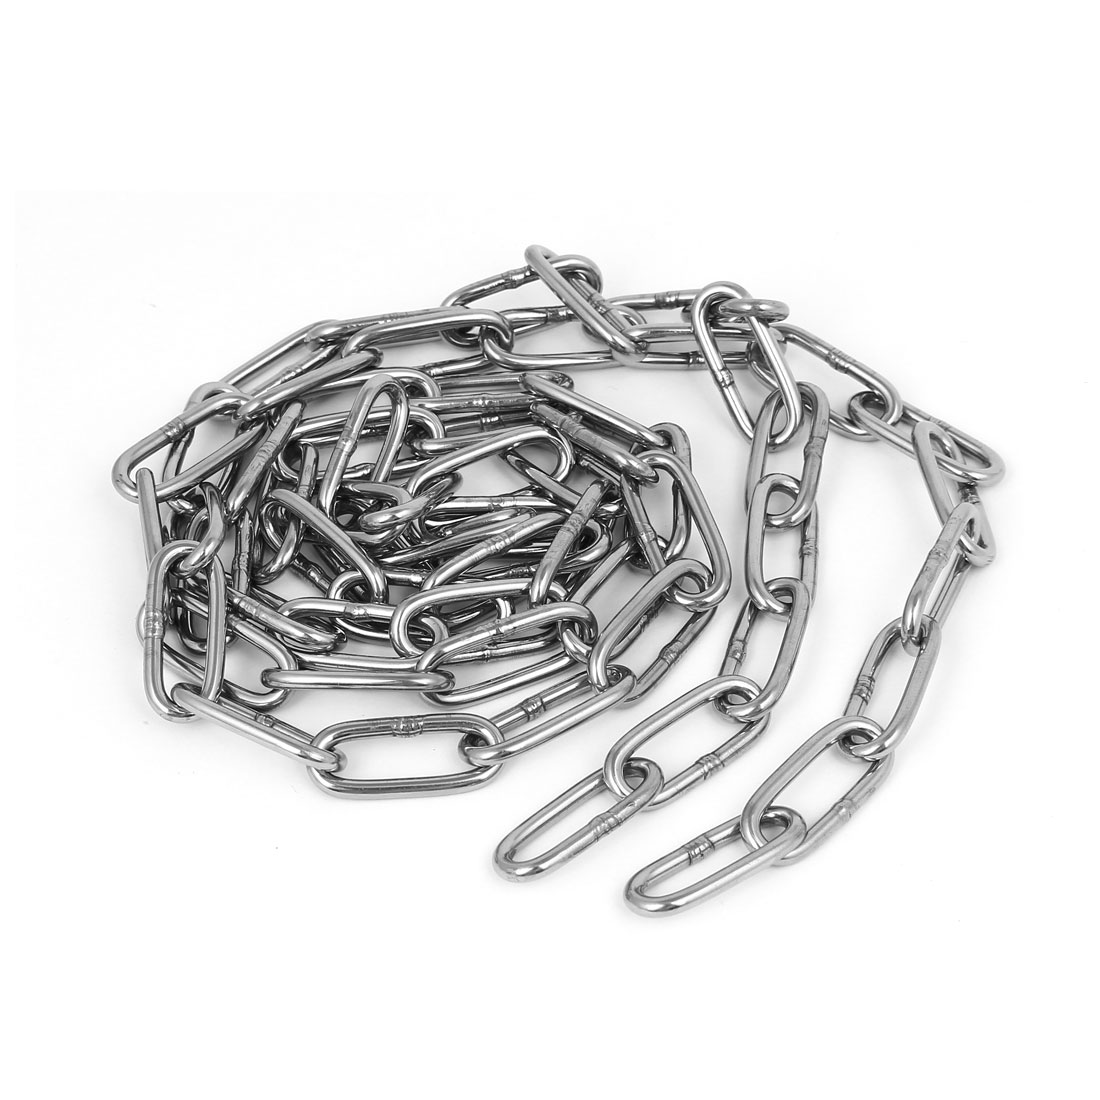 Pet Dog Training Clothes Hanging 304 Stainless Steel Coil Chain Silver Tone M3x5Ft